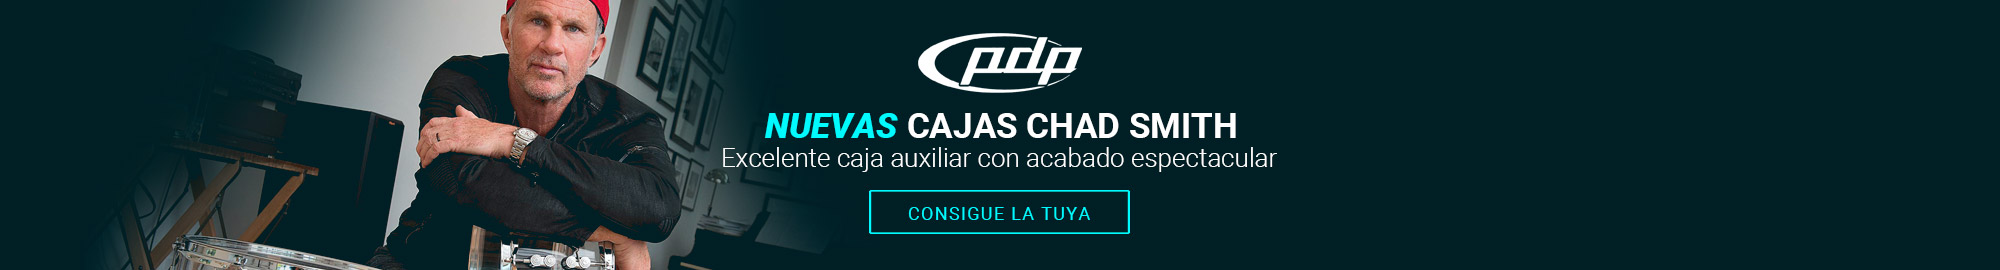 Cajas Chad Smith